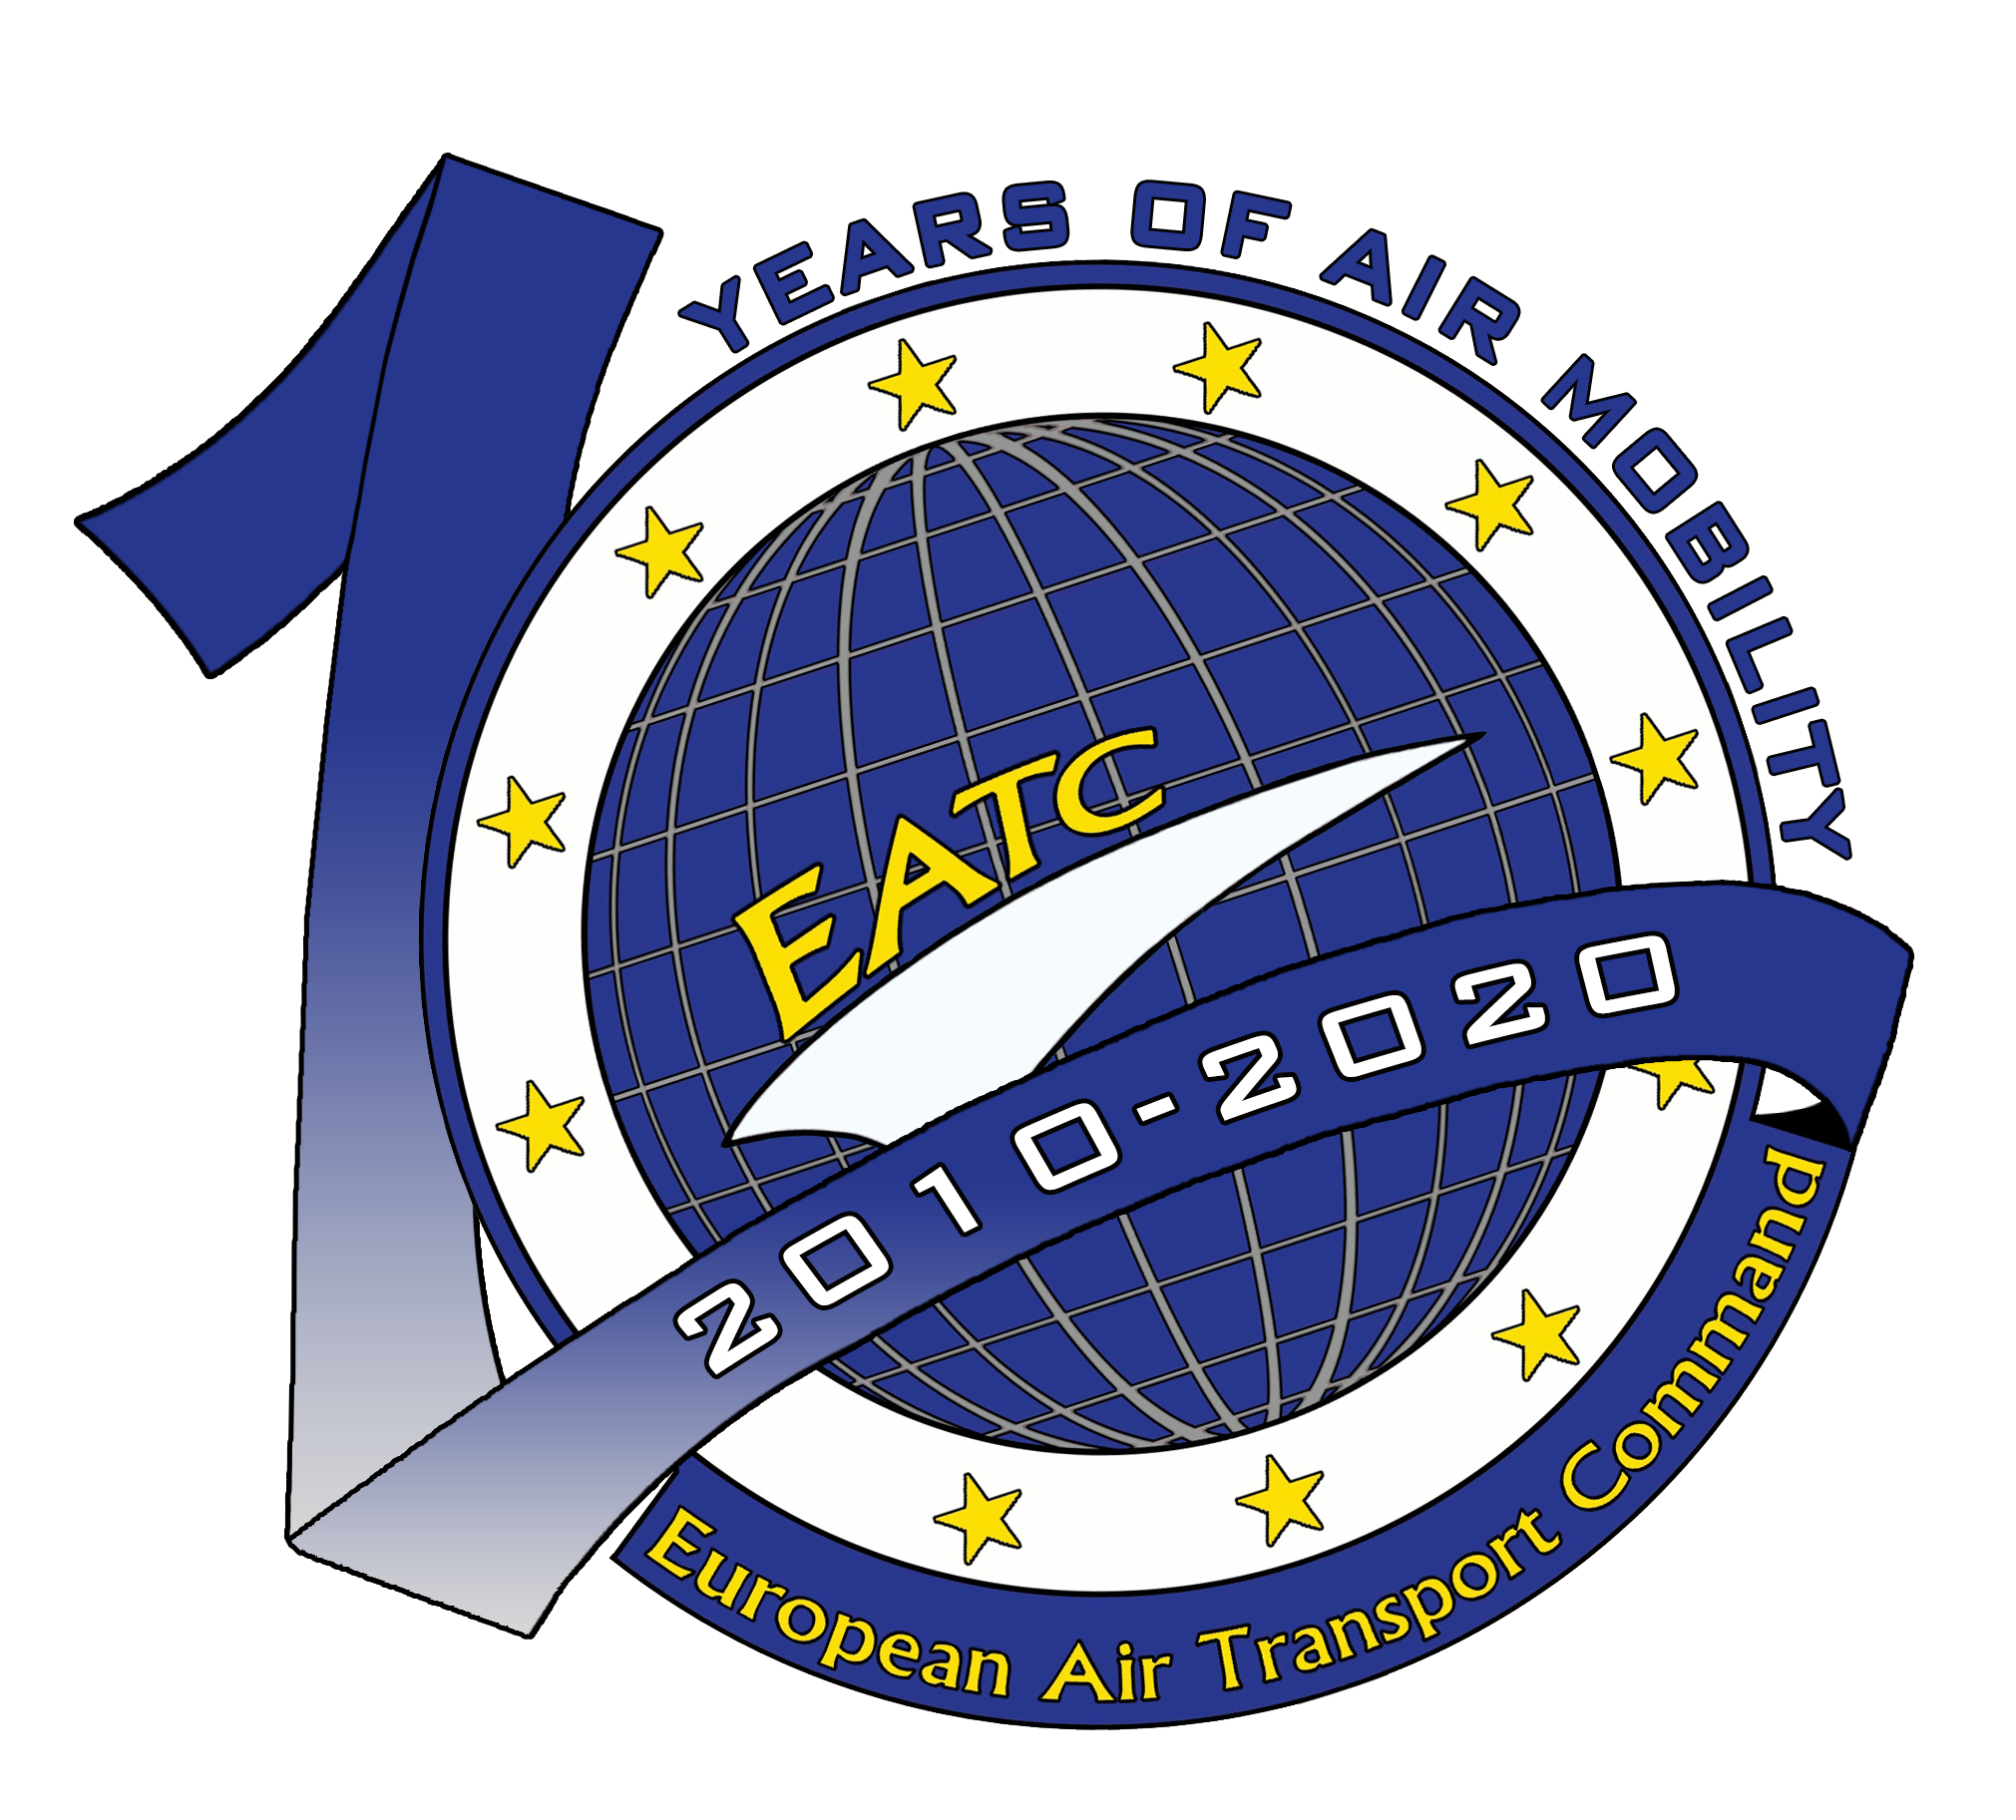 EATC turns ten!